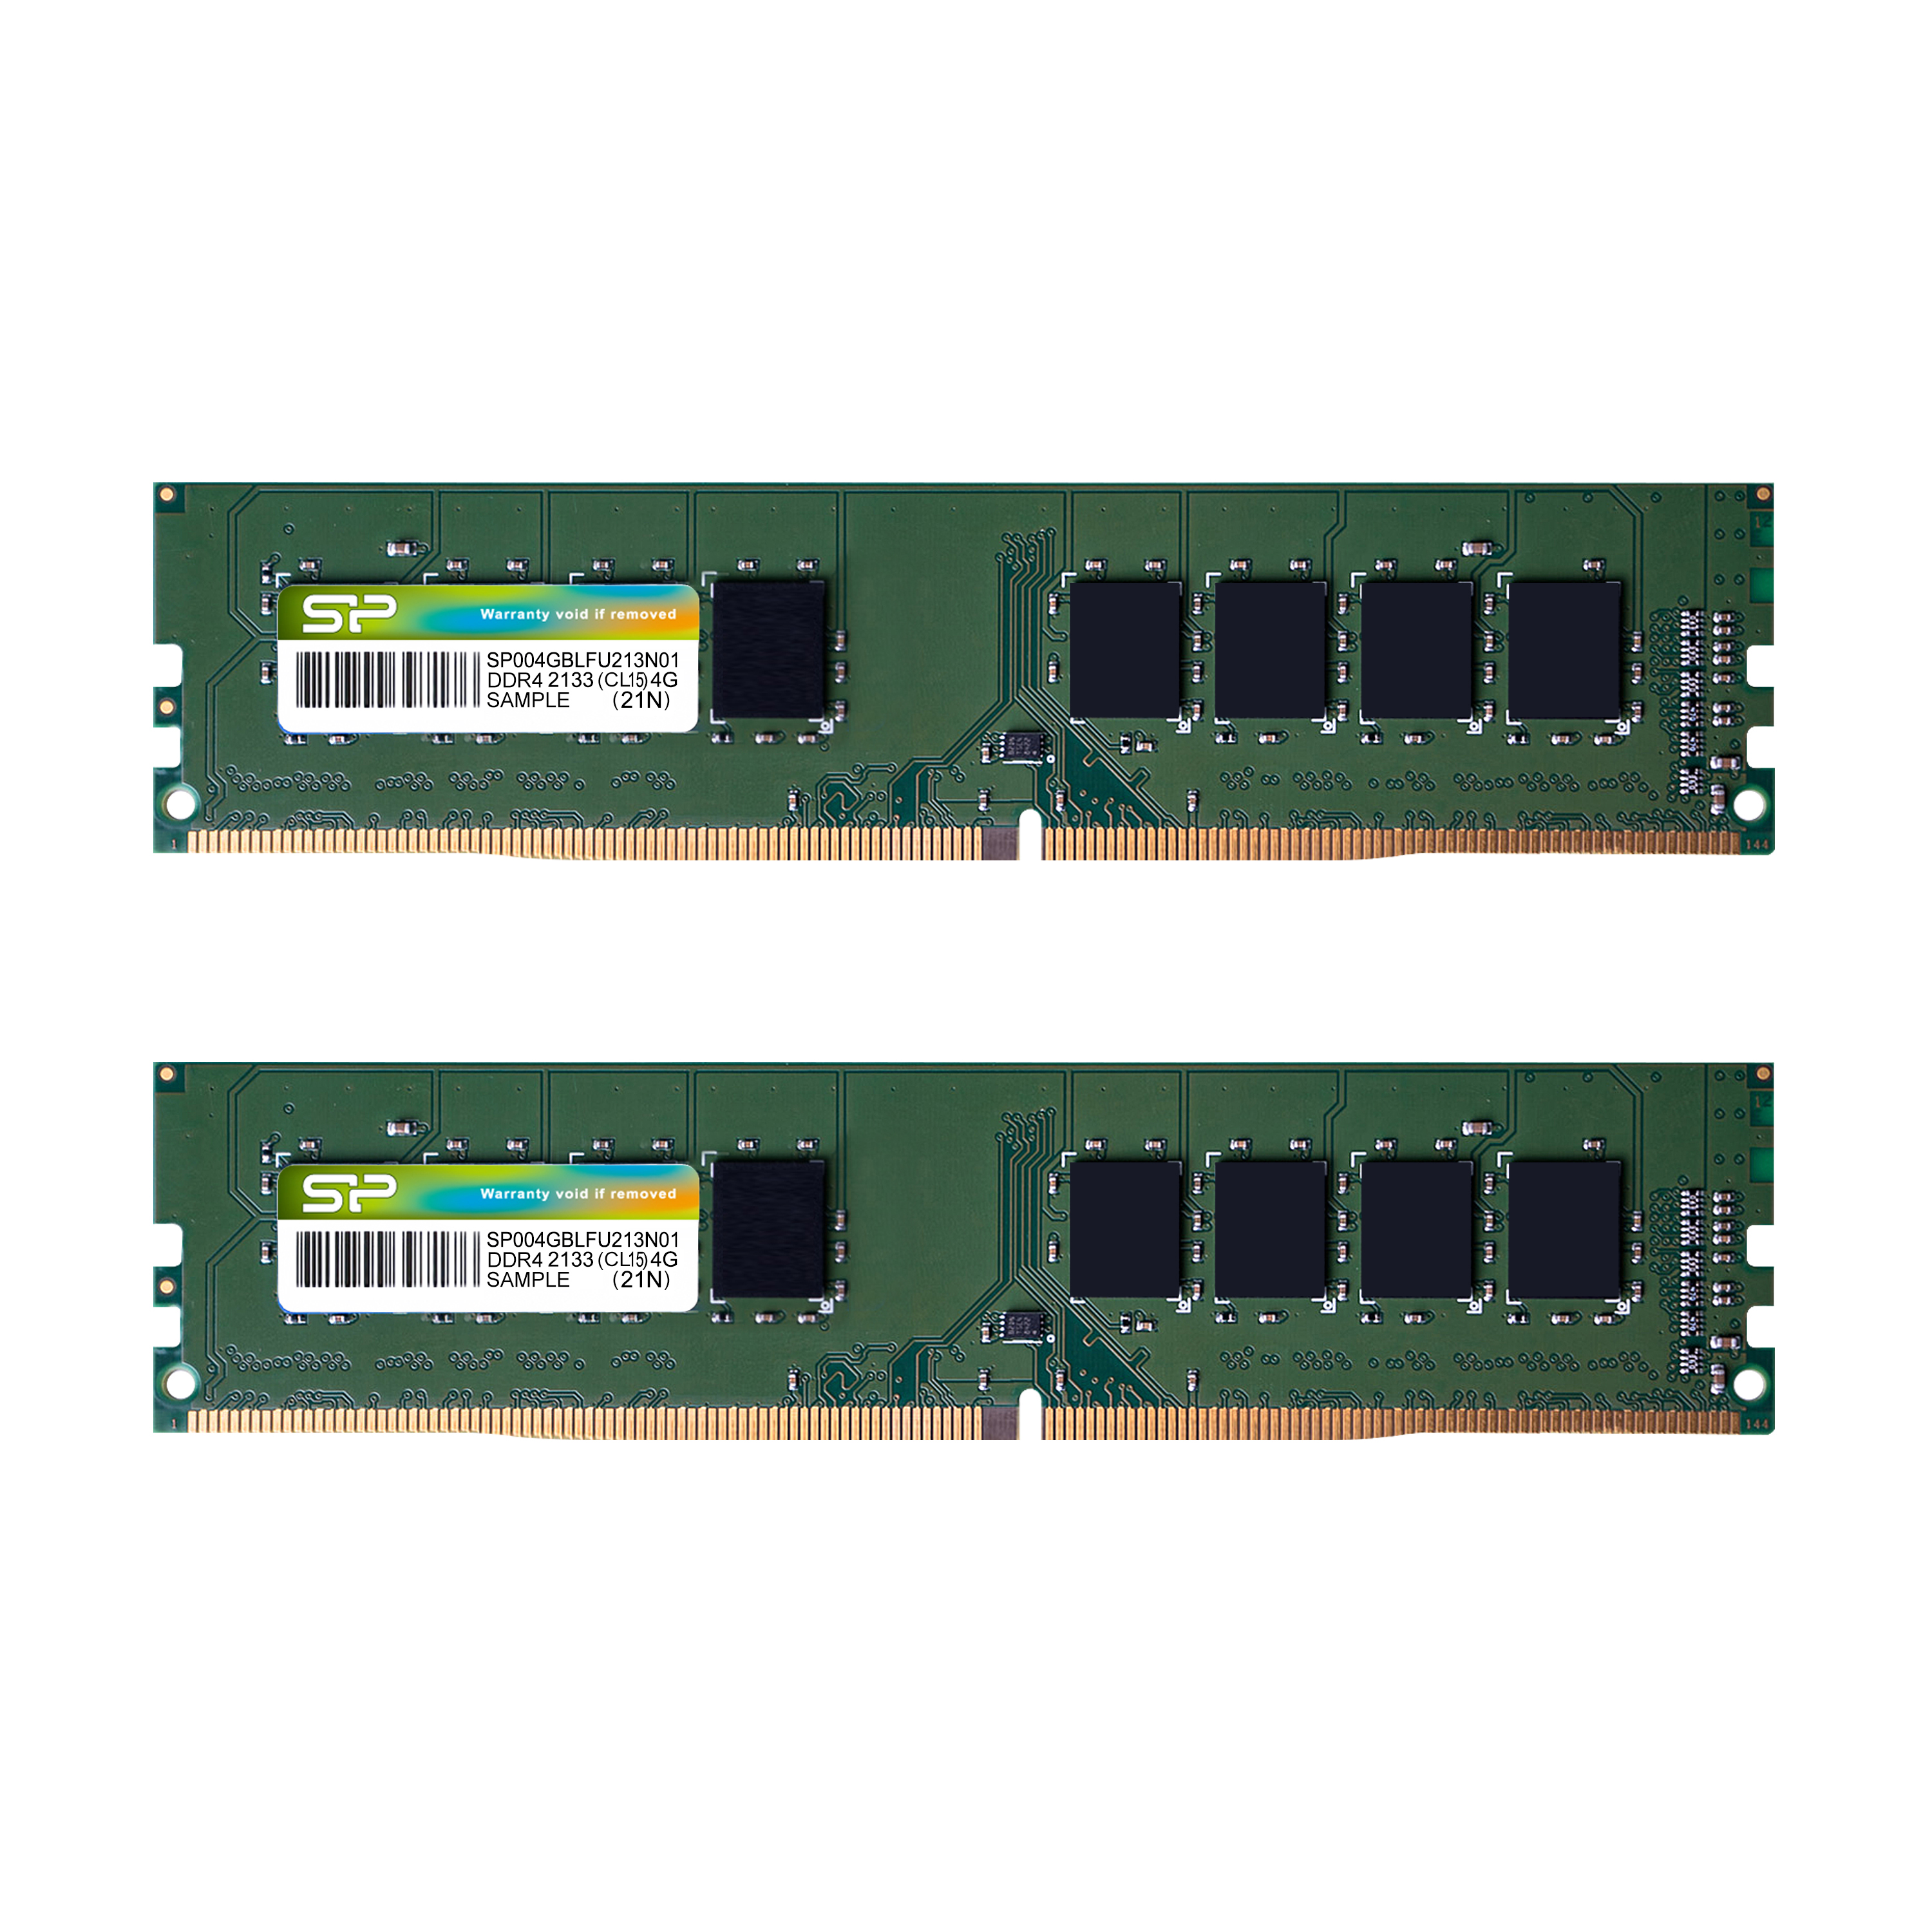 Memory Modules DDR4 288-PIN Unbuffered DIMM_Dual Channel Kit